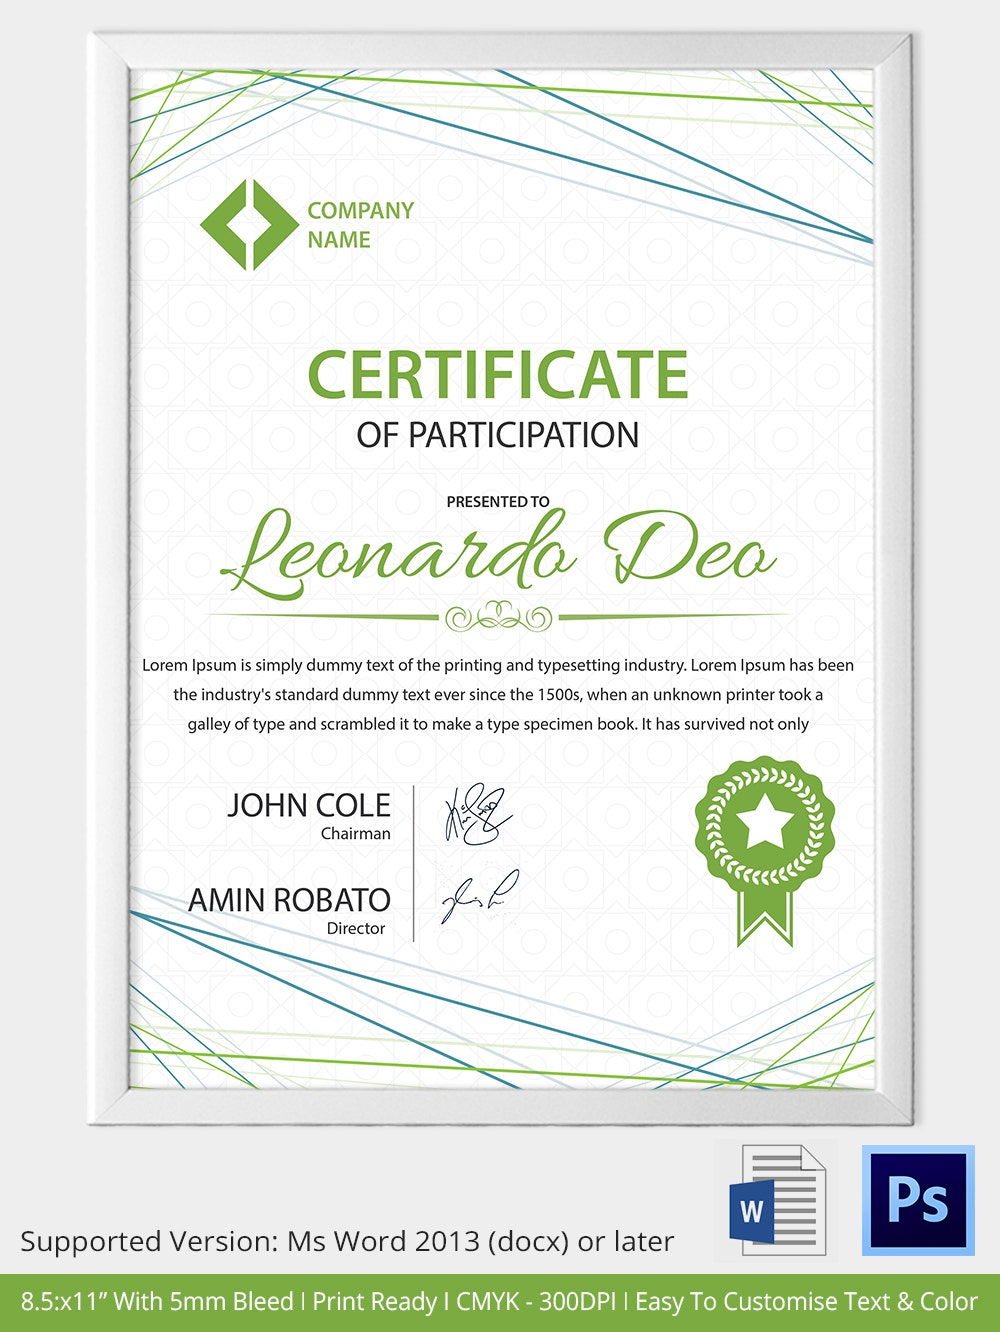 33 psd certificate templates free psd format download for Certification of participation free template